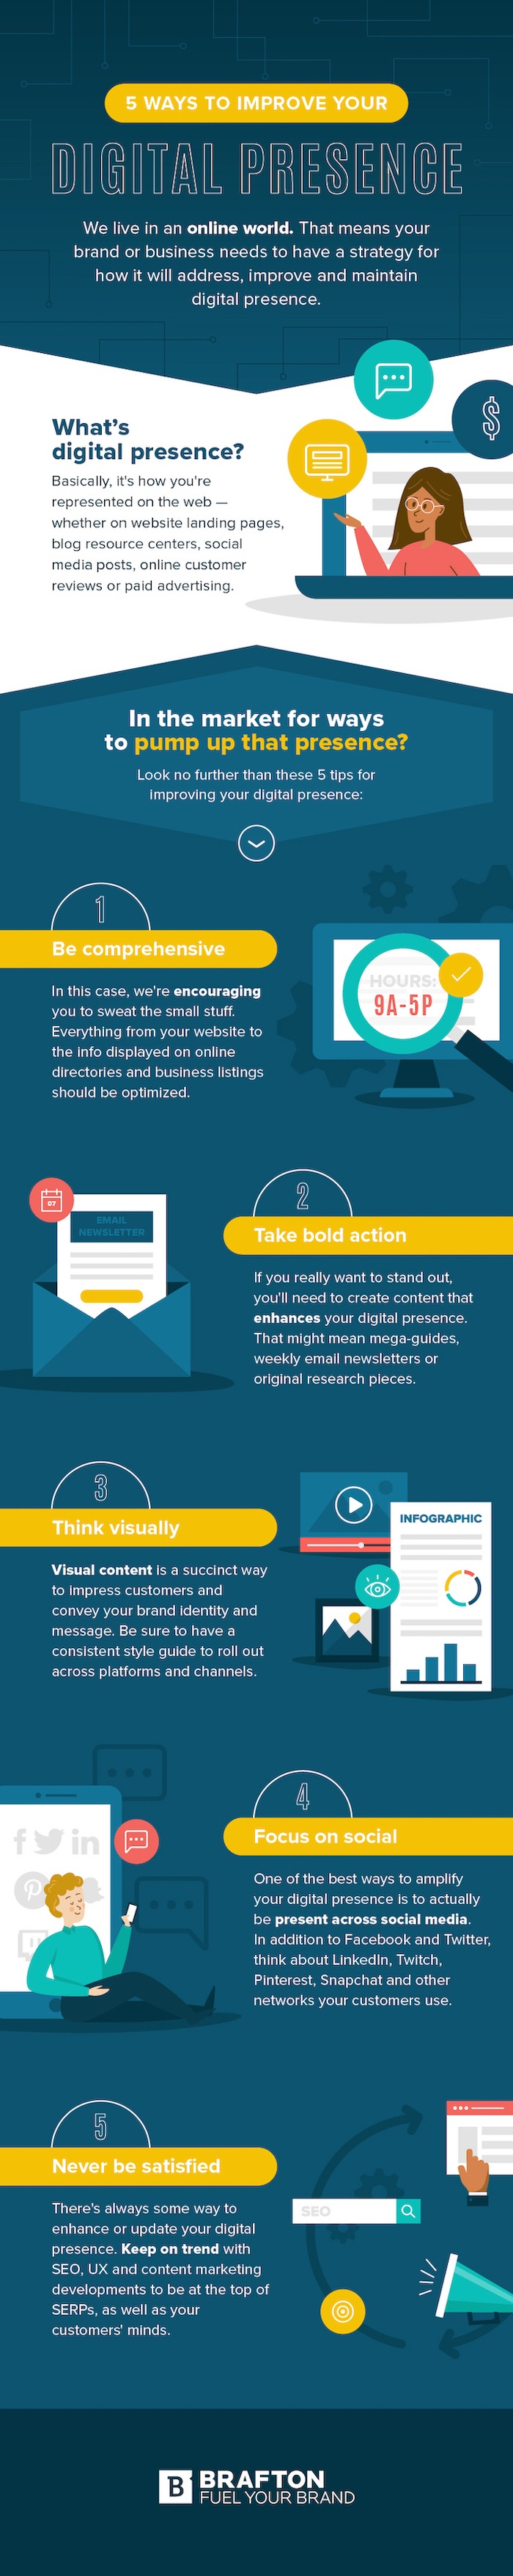 5 ways to improve your digital presence infographic